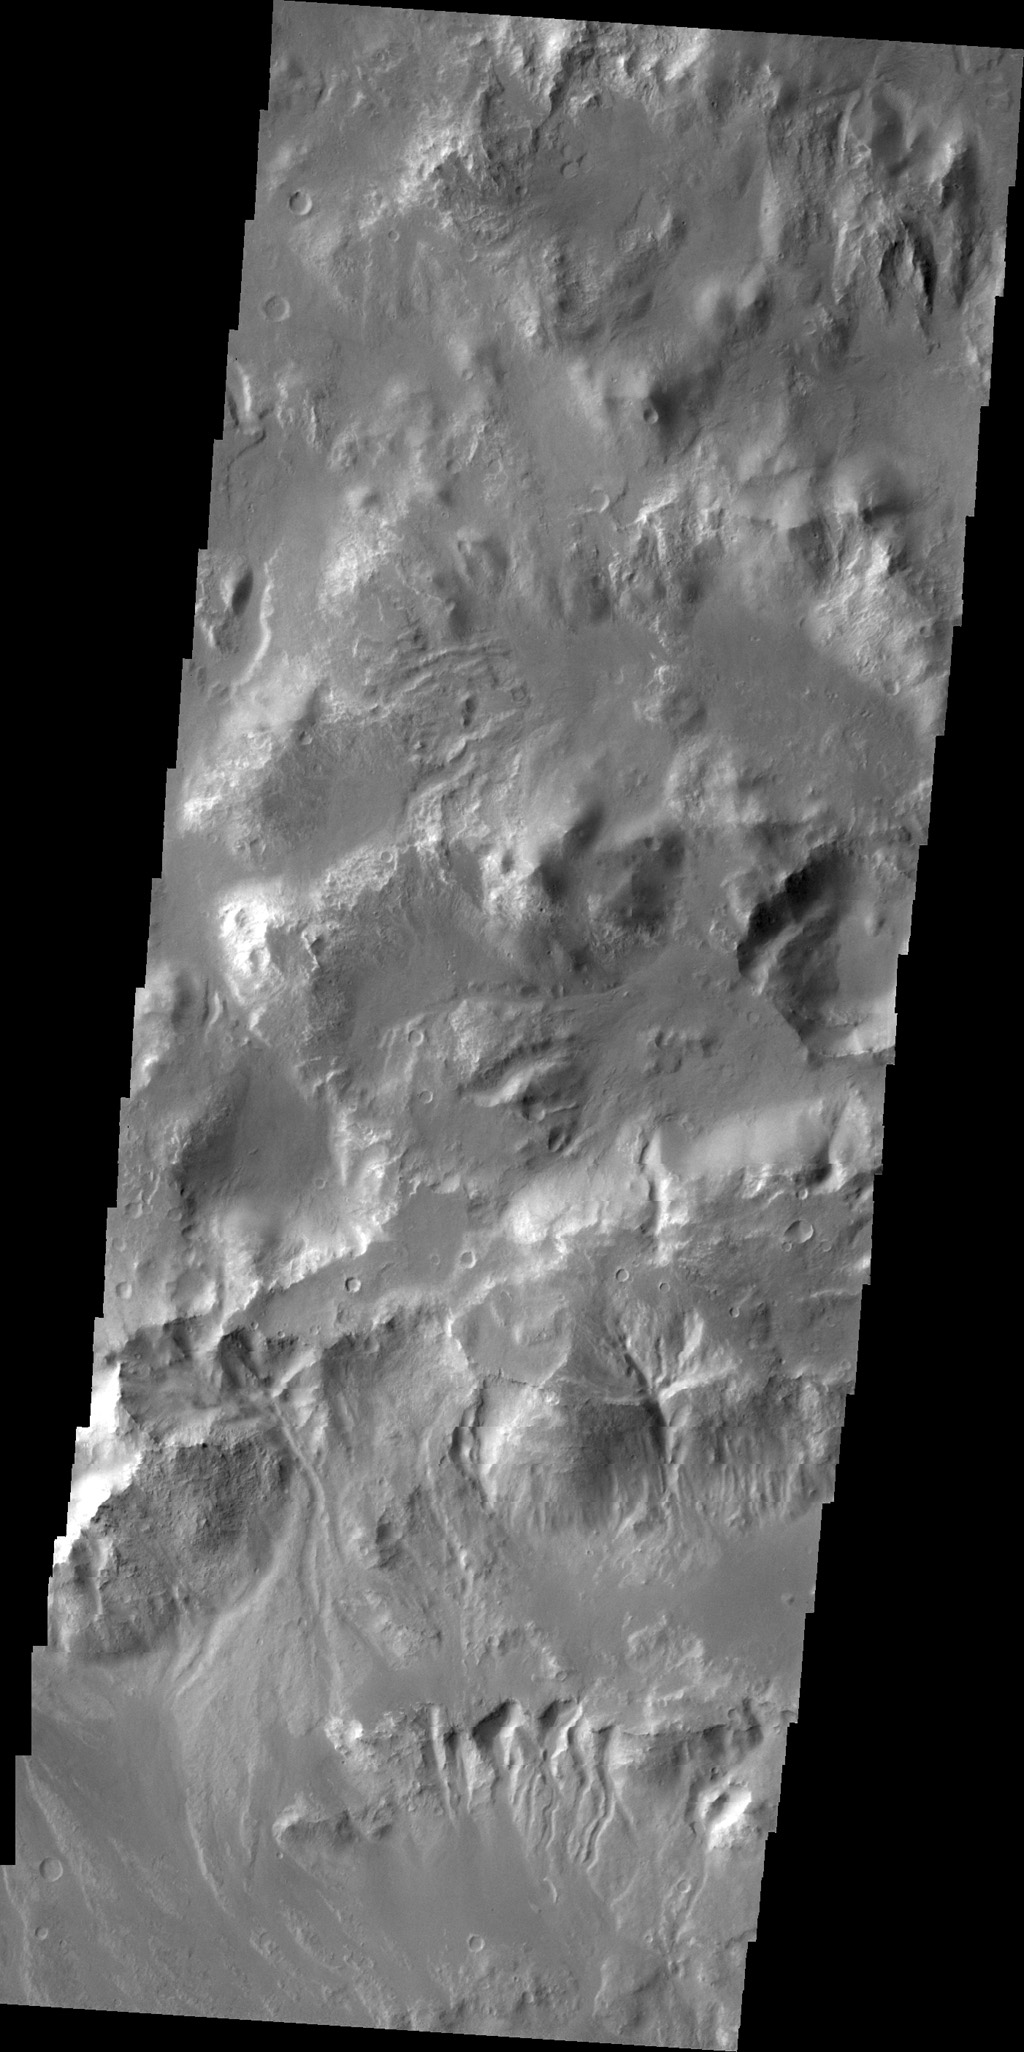 Gullies are visible in this image of the northern rim of Holden Crater as seen by NASA's 2001 Mars Odyssey spacecraft.